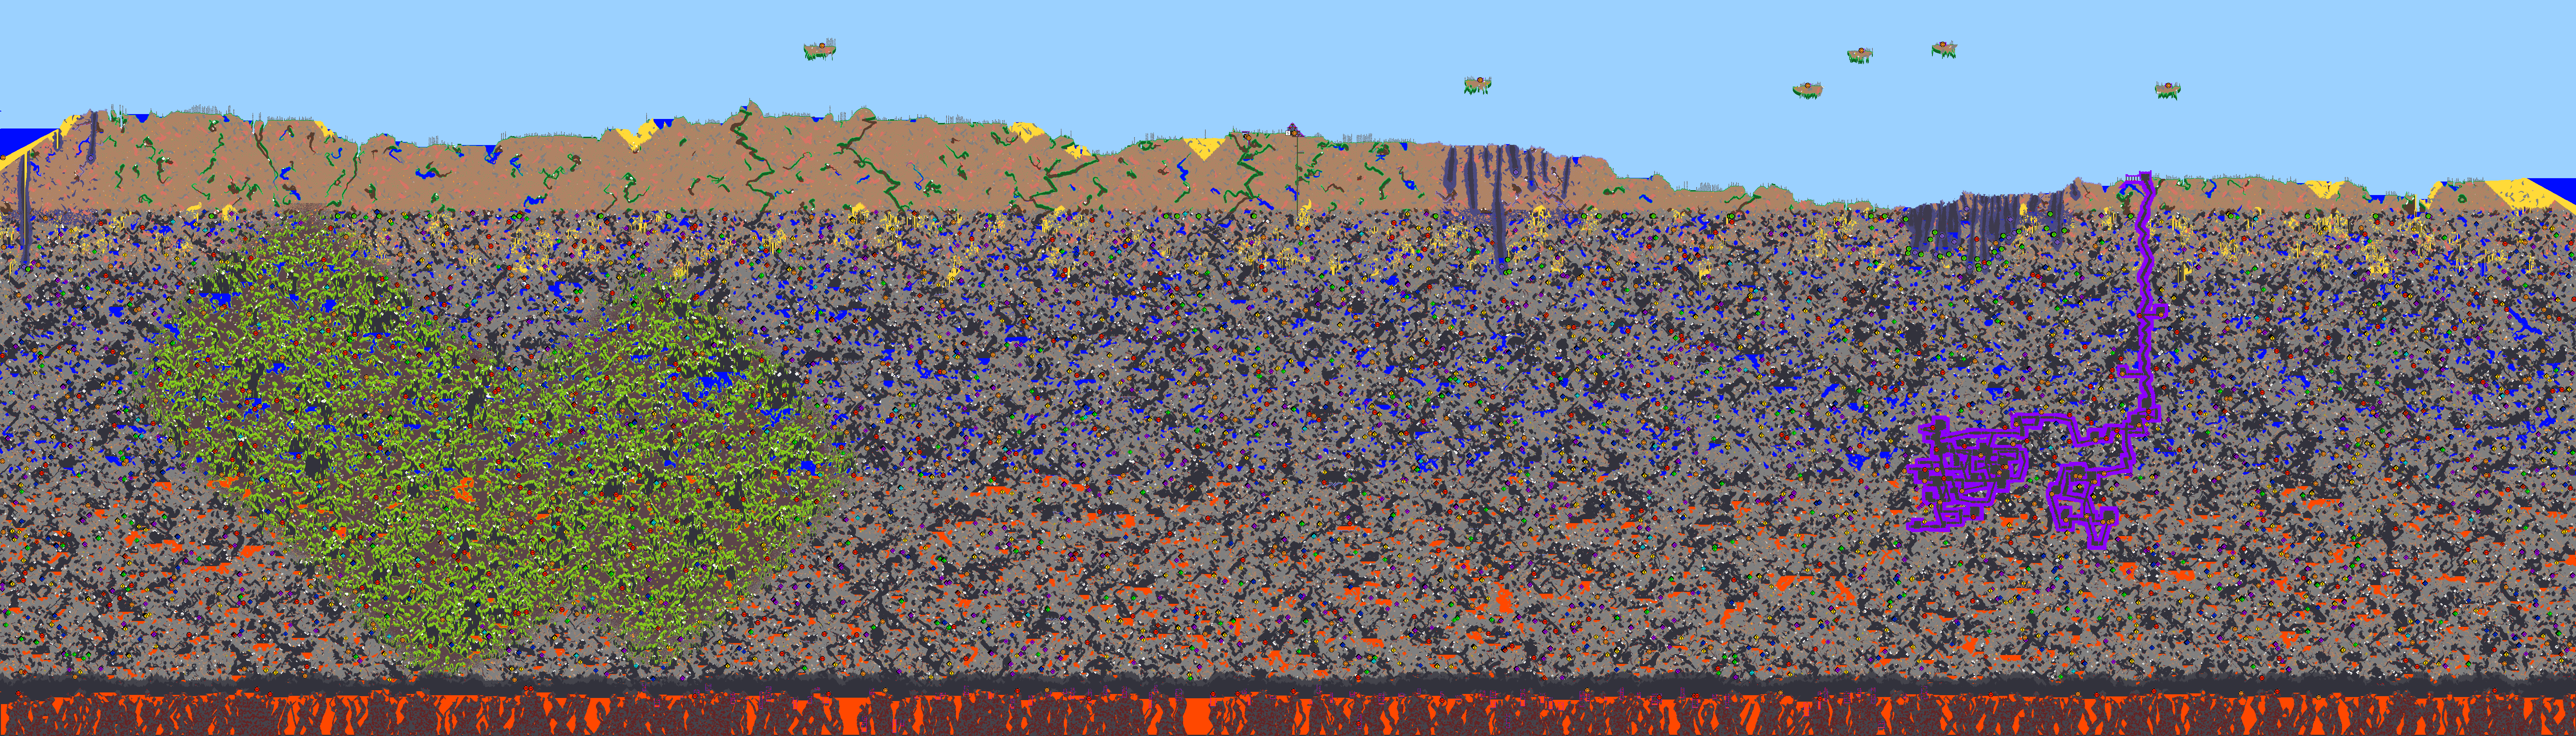 2d tile world generation general and gameplay programming httpfc06iantartfs70f201114529terraria mapviewerbykronedawg d3h67a2g gumiabroncs Images